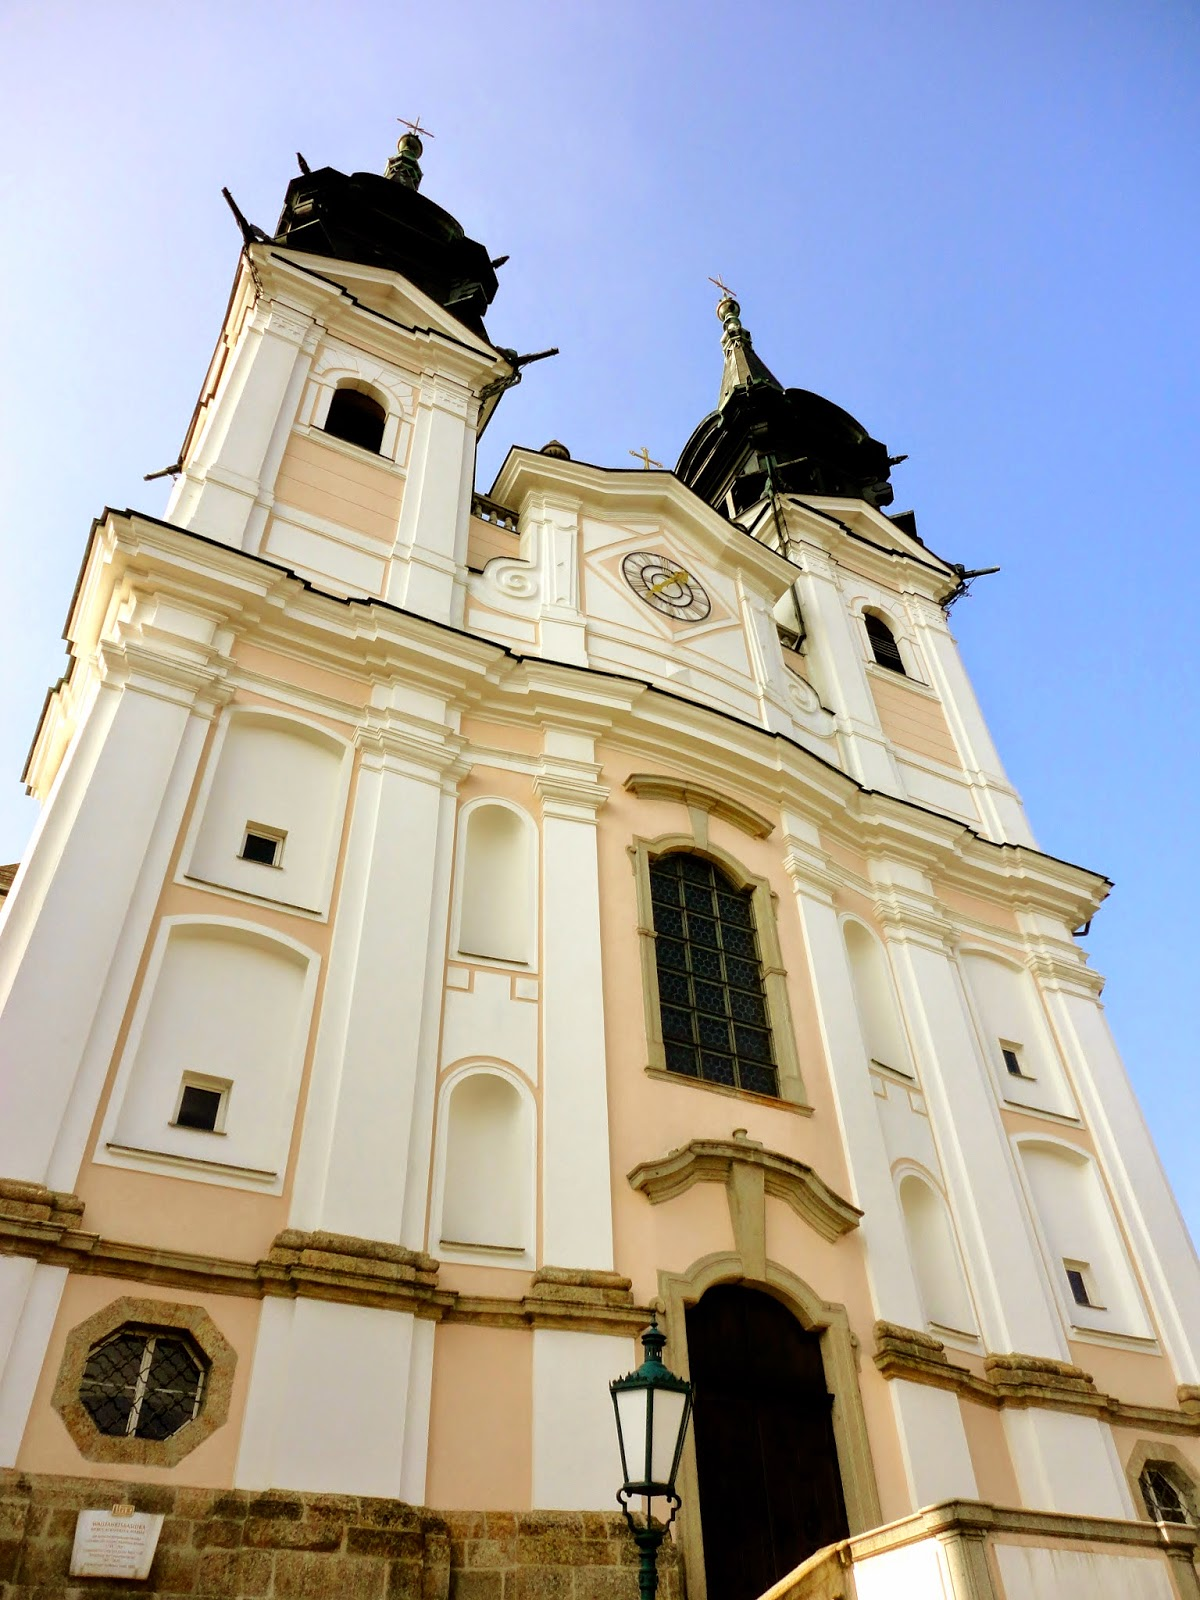 Postlingberg church in Linz, Austria